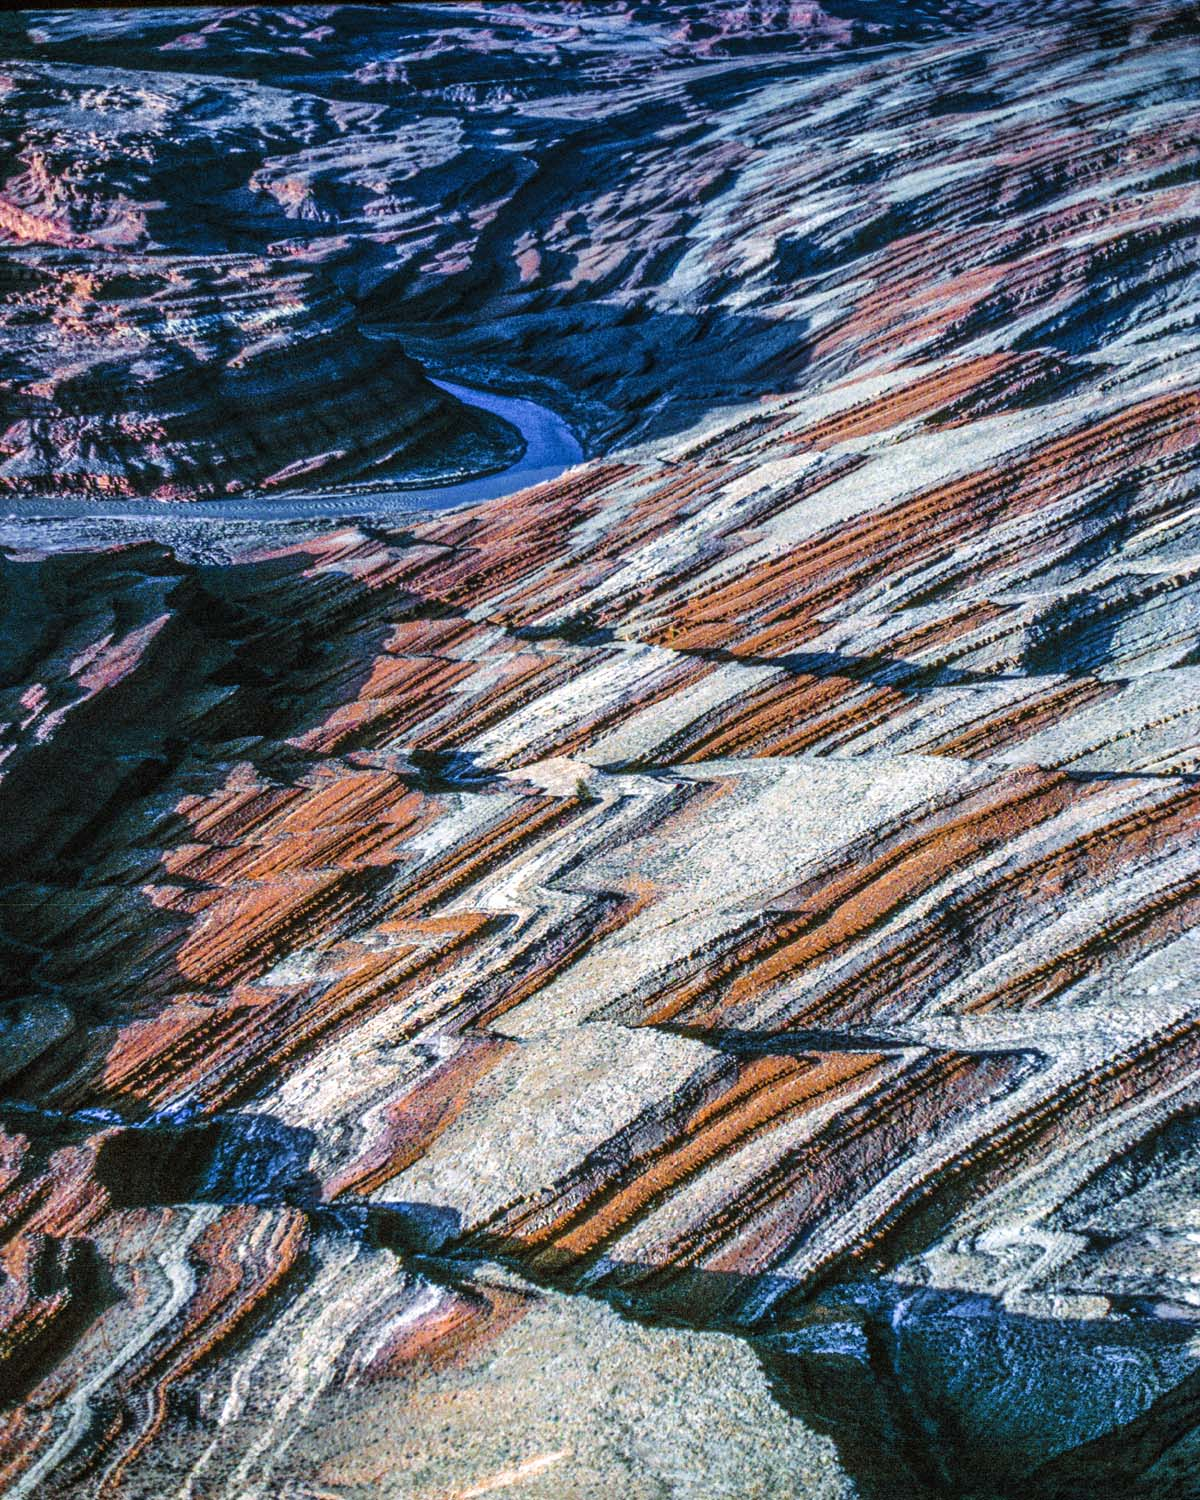 Raplee anticline San Juan river, Utah Sunset photographed by Tom Till